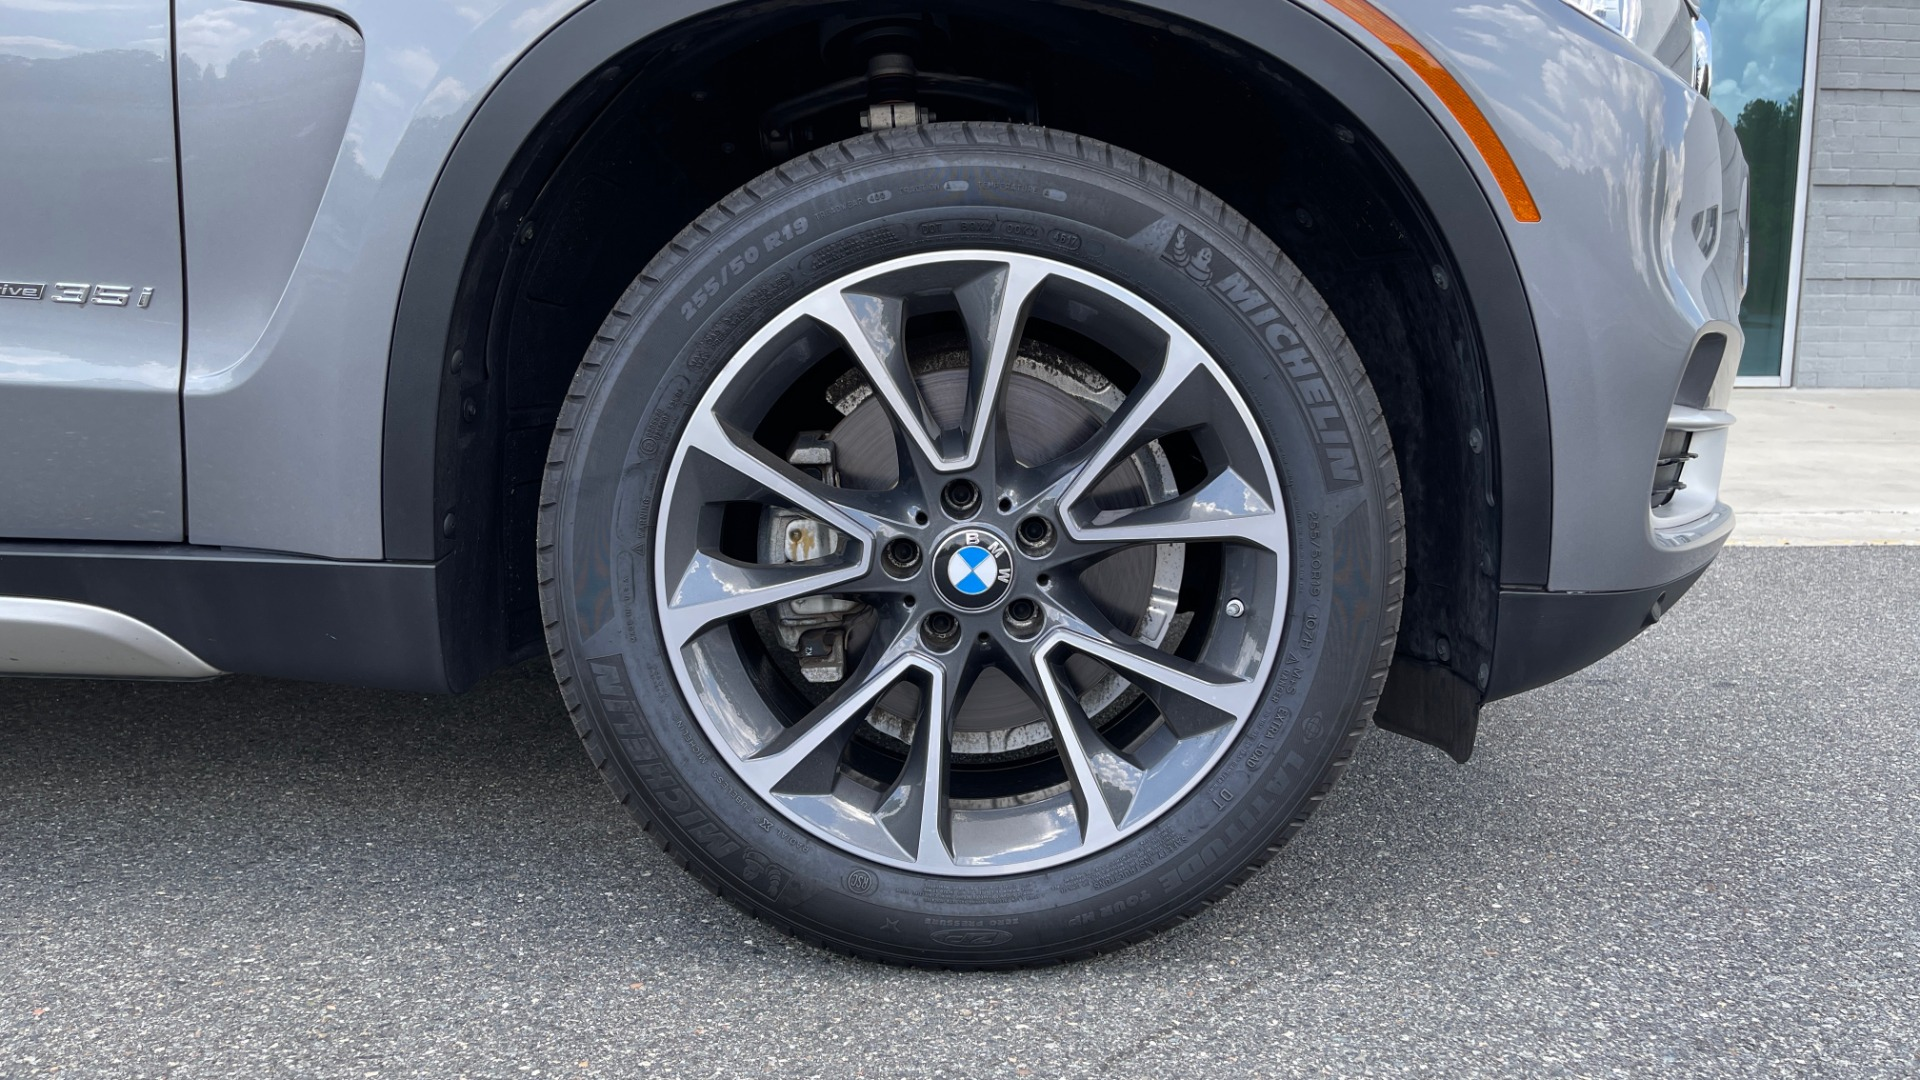 Used 2018 BMW X5 XDRIVE35I PREMIUM / DRVR ASST / WIRELESS CHARGING / CAMERAS for sale $46,995 at Formula Imports in Charlotte NC 28227 85